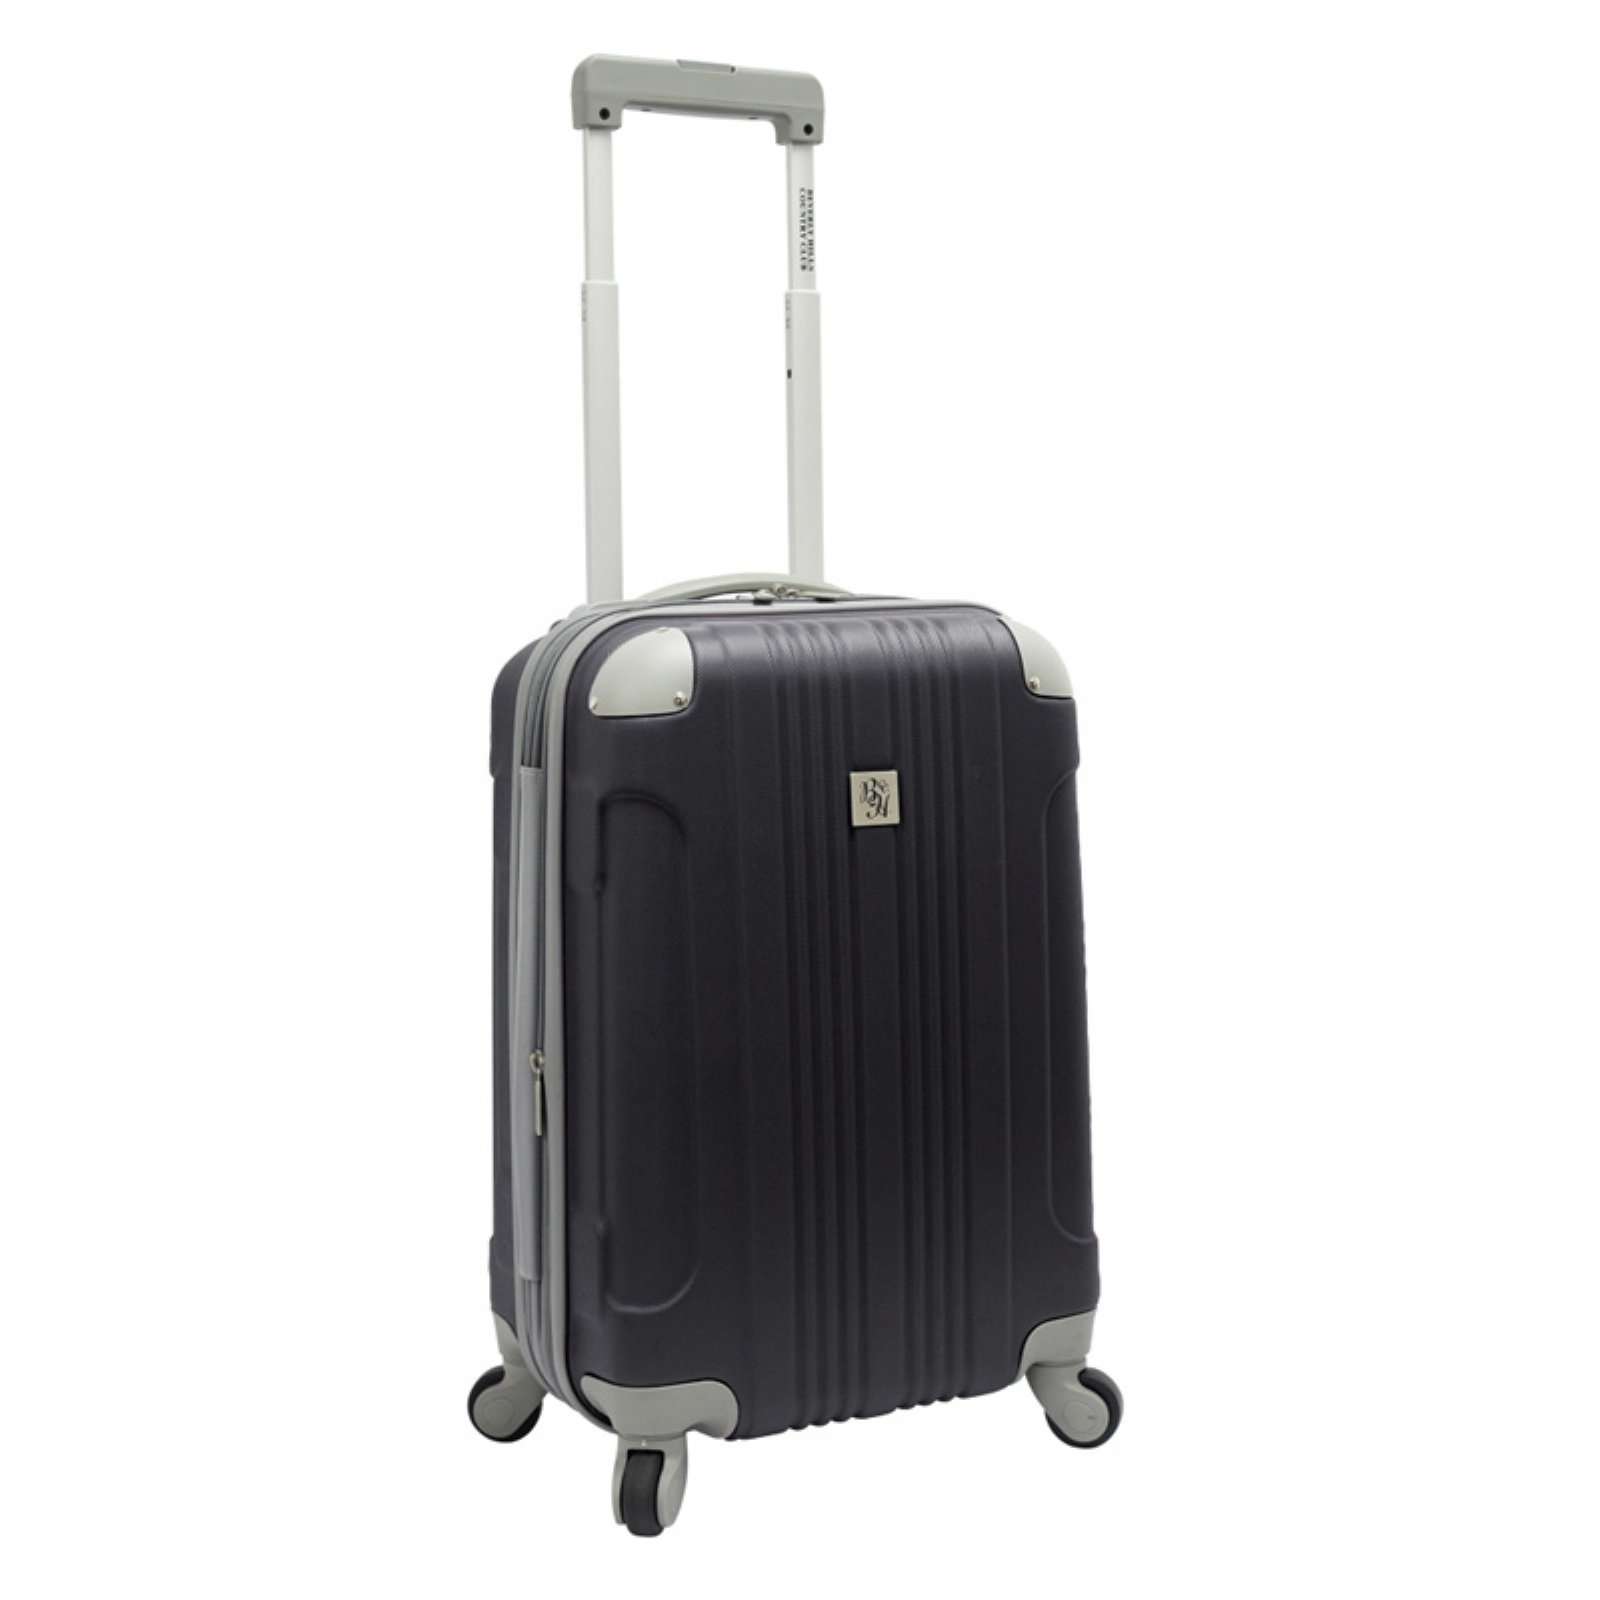 Beverly Hills Country Club Newport 21 in. Carry-on Hardside Expandable Spinner Luggage Bag